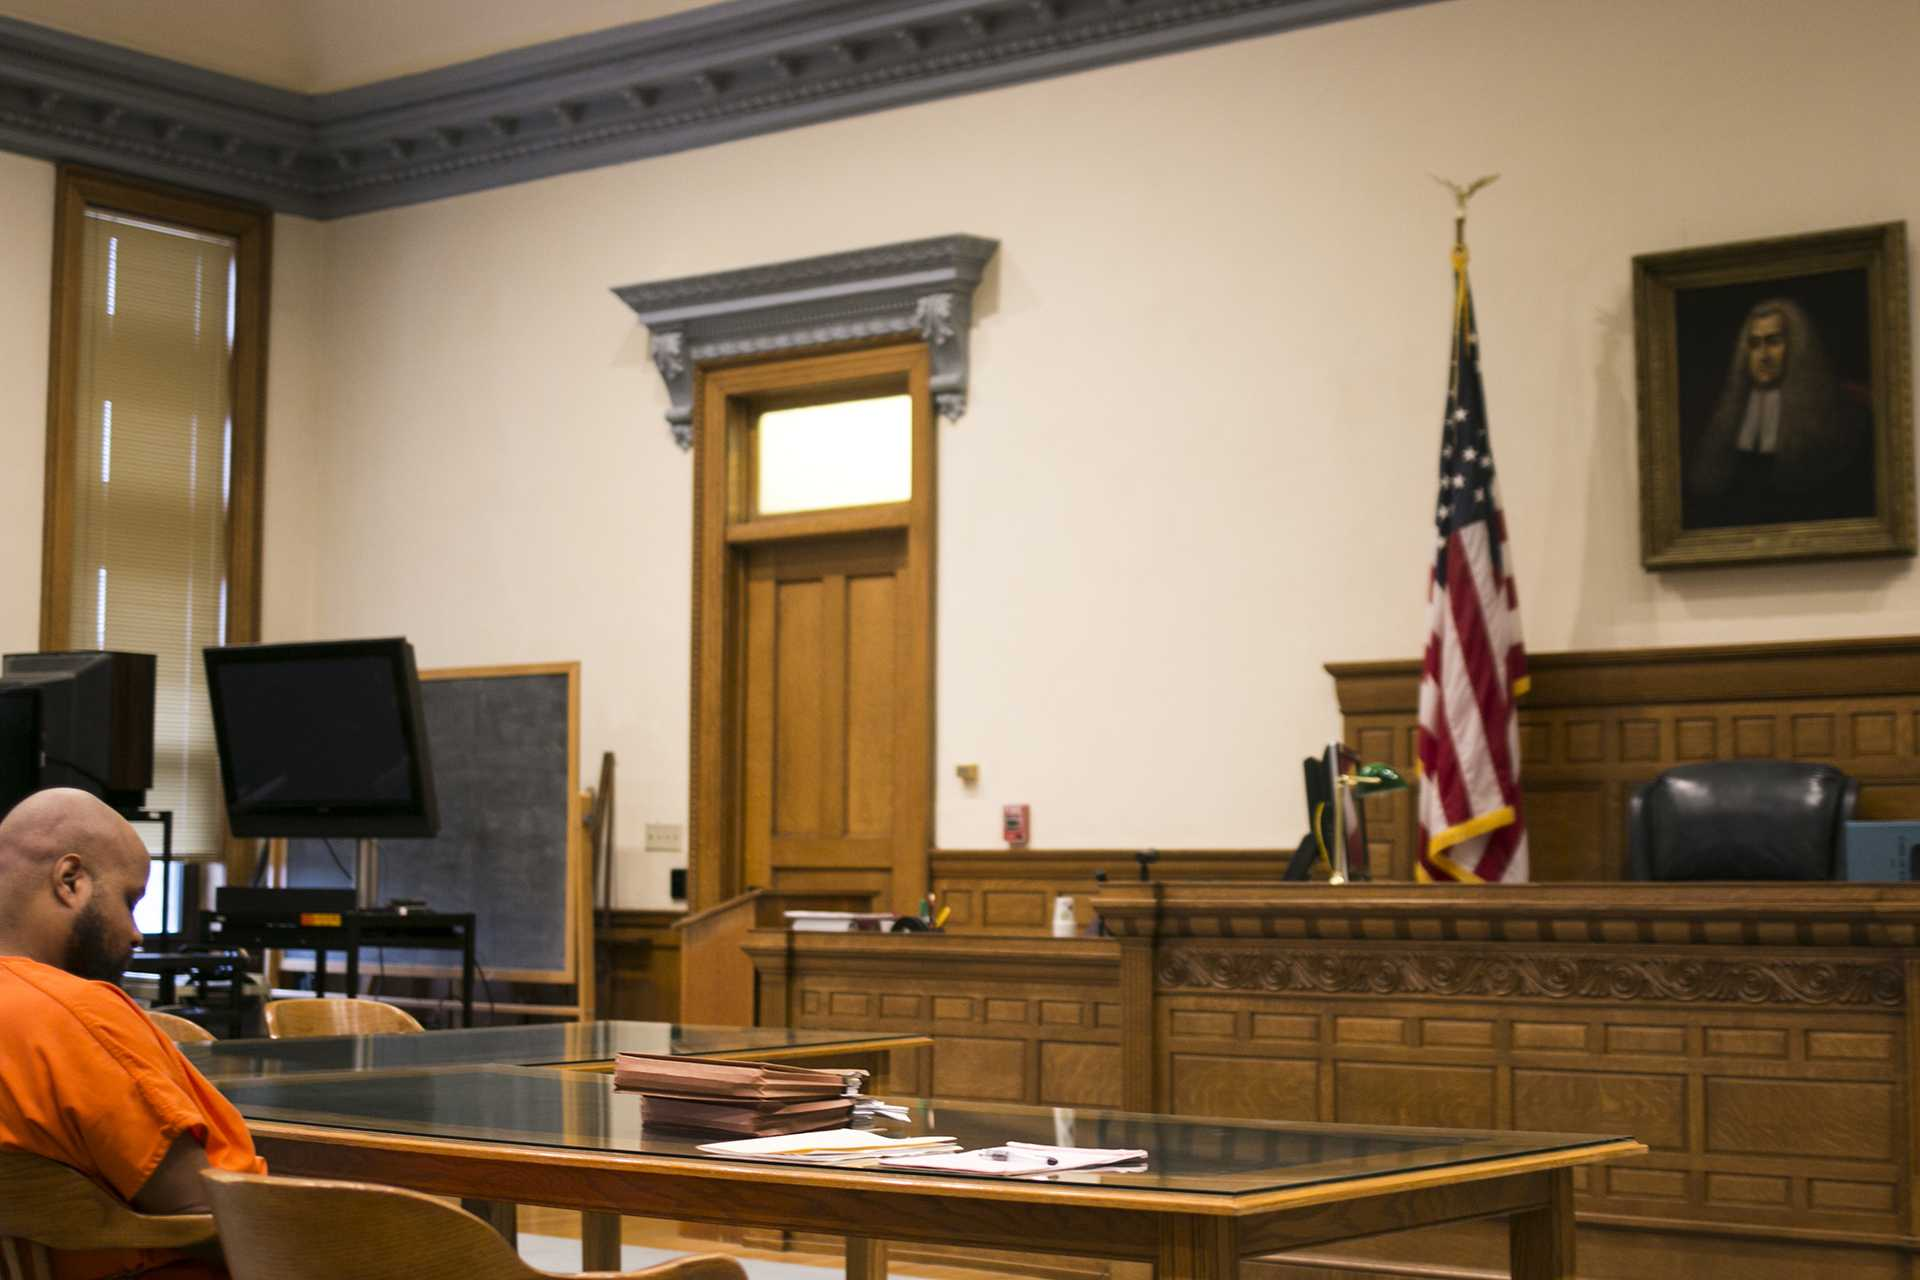 Curtis Jones sits before a case-management conference for Curtis Jones in the Johnson County courthouse on Friday, Nov. 17, 2017. Jones is being charged with first-degree murder in connection with the slaying of cab driver Ricky Lillie and first-degree robbery. (Joseph Cress/The Daily Iowan)